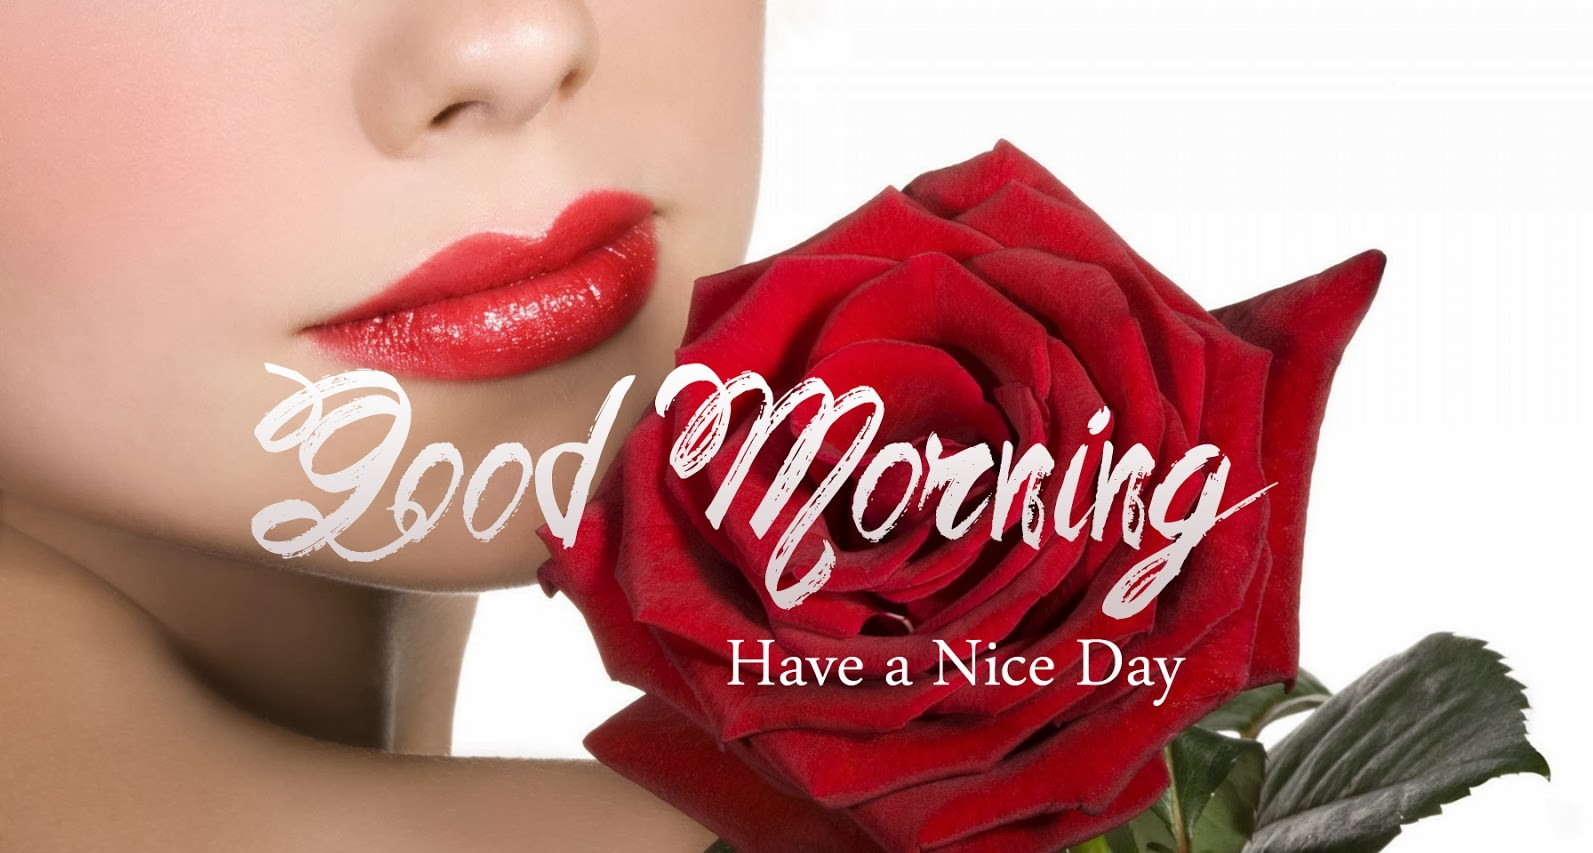 Lovely And Beautiful Good Morning Wallpapers - Romantic Good Morning Beautiful Girl - HD Wallpaper